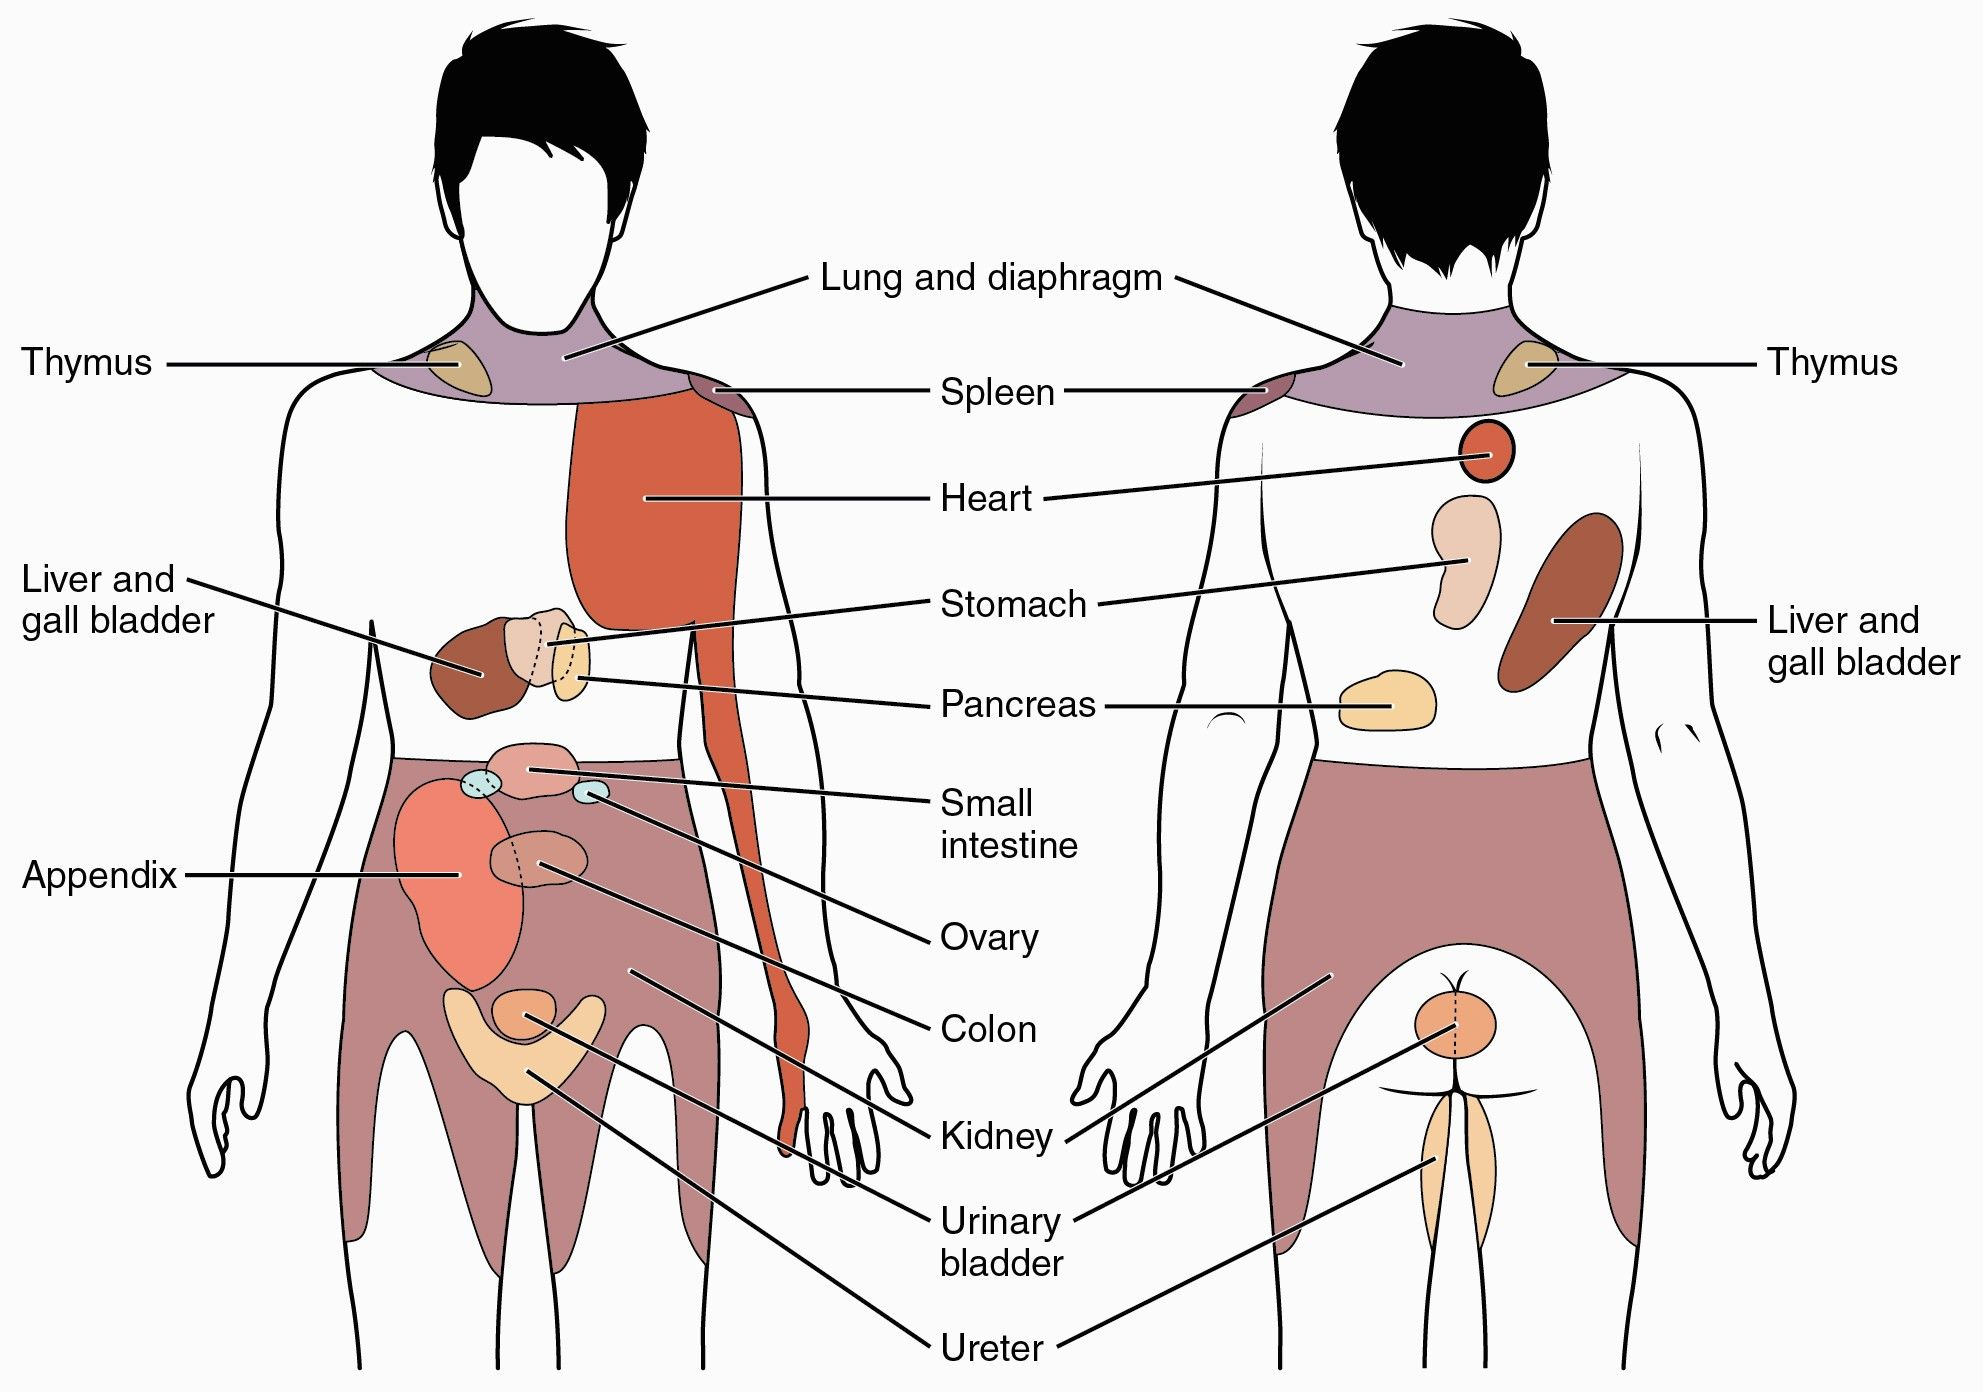 hight resolution of anatomy of body pain liver pain location diagram anatomy organ